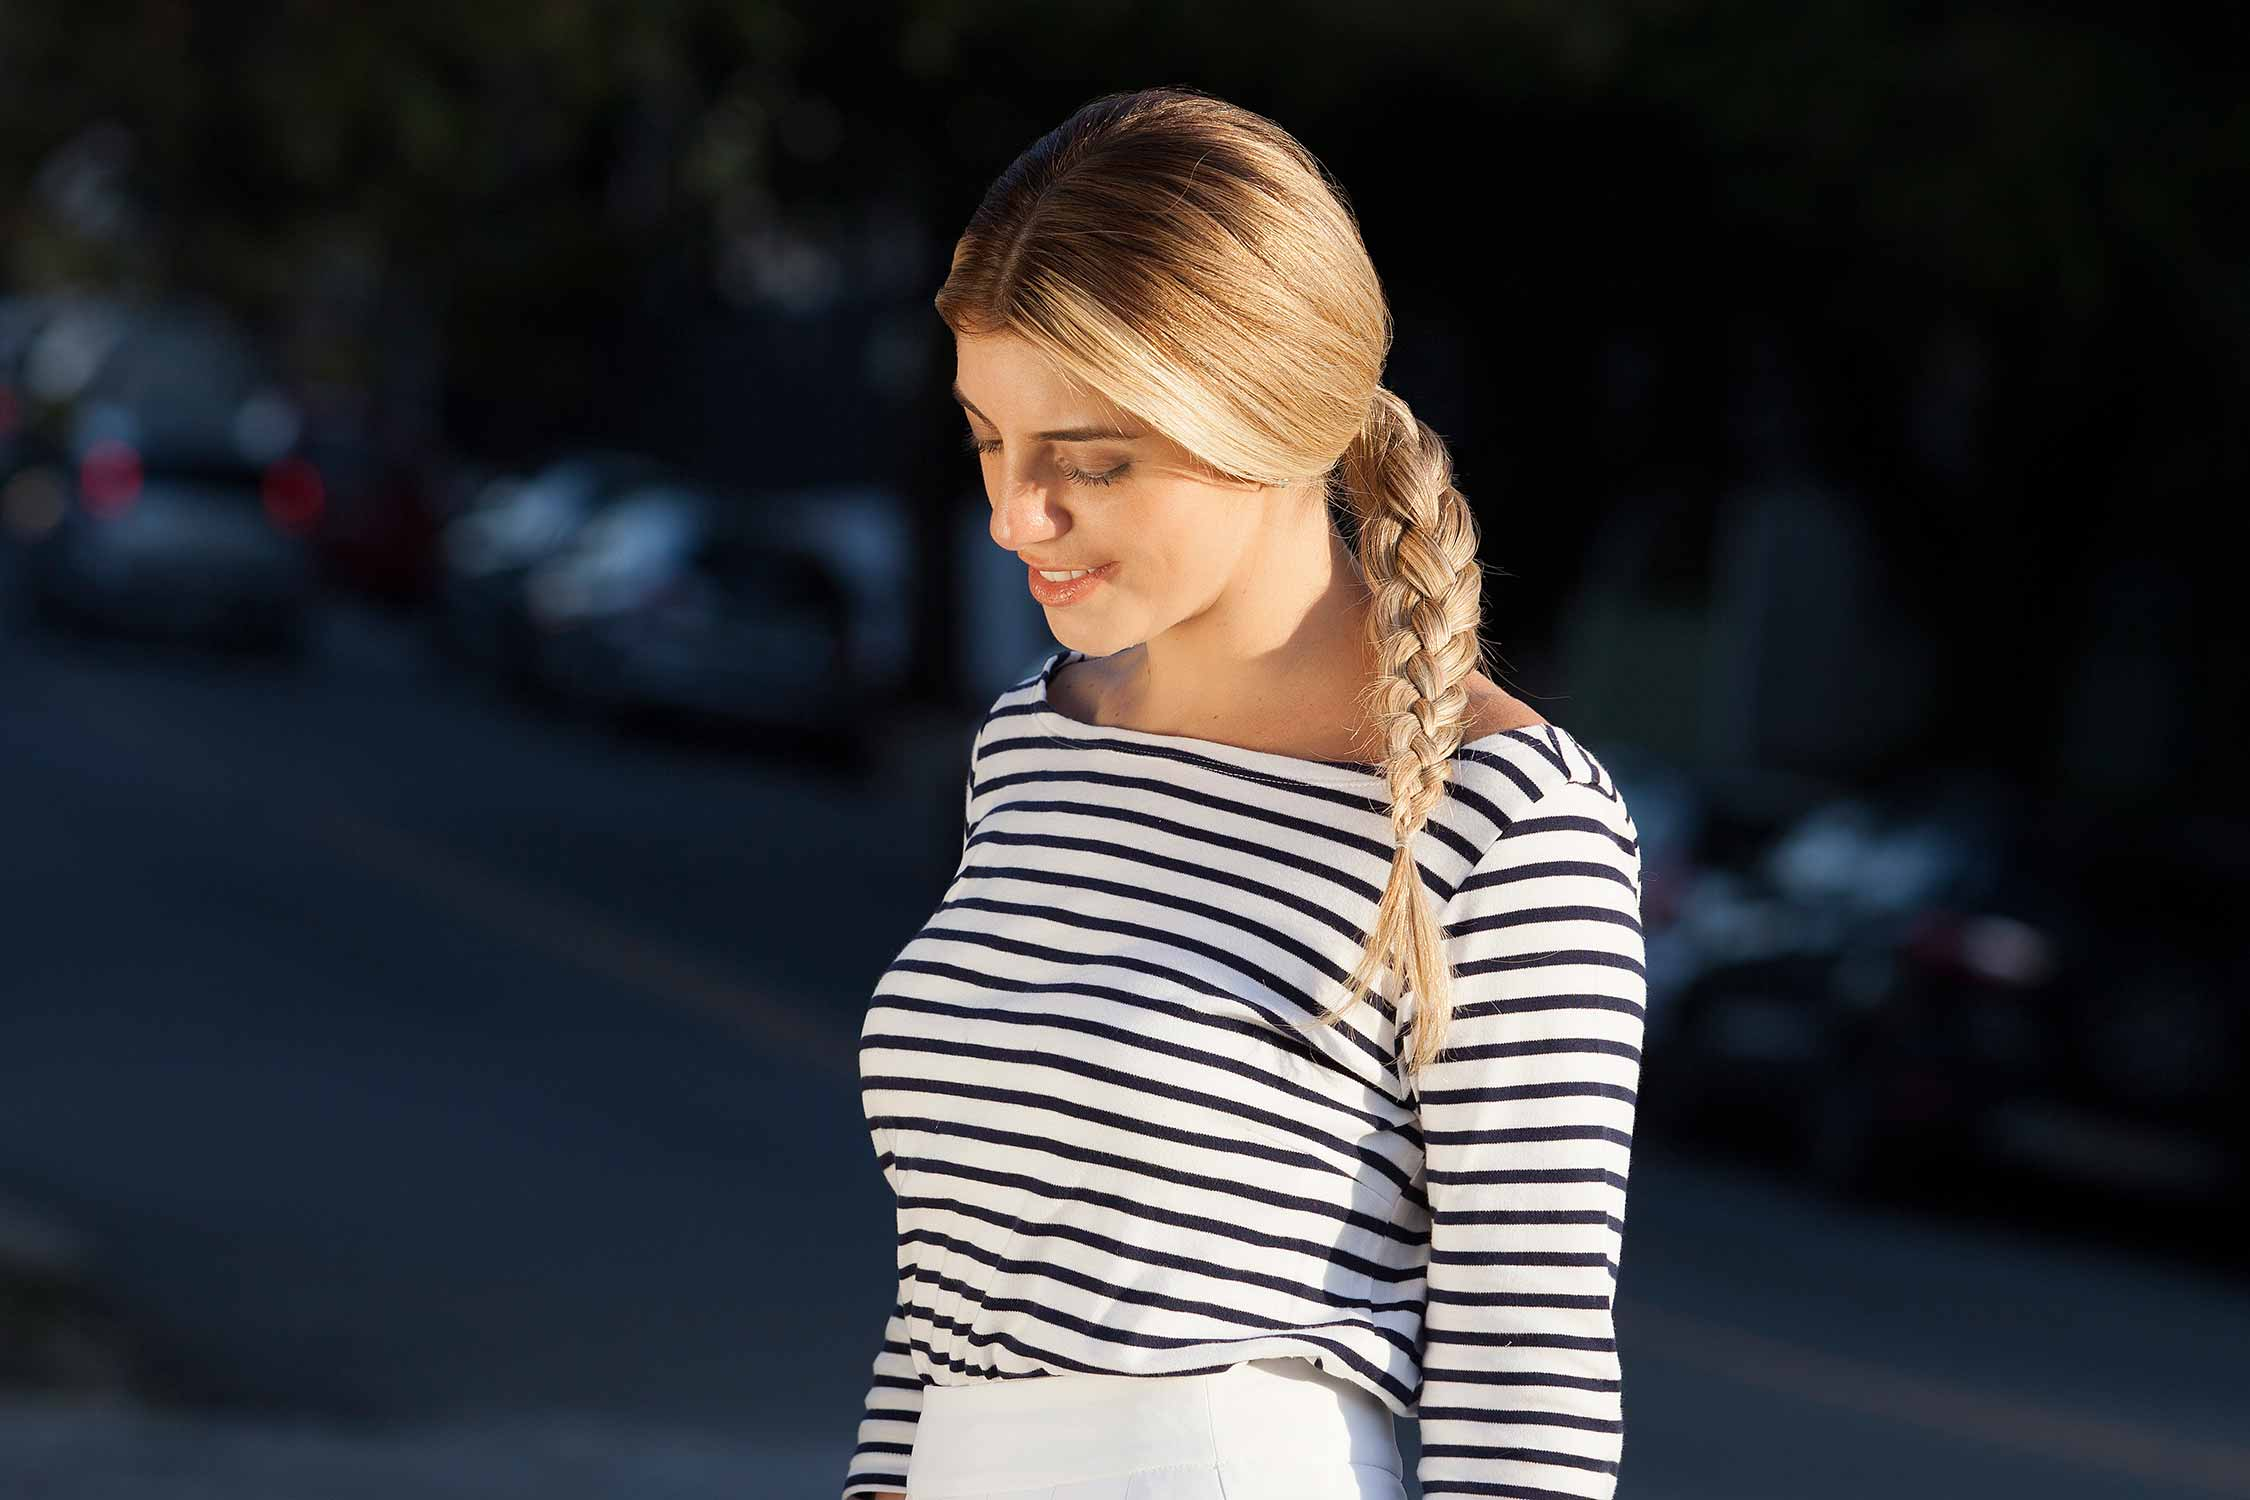 How to do a four strand braid: A blonde woman looking down with a four strand braid, wearing a stripy top and smiling